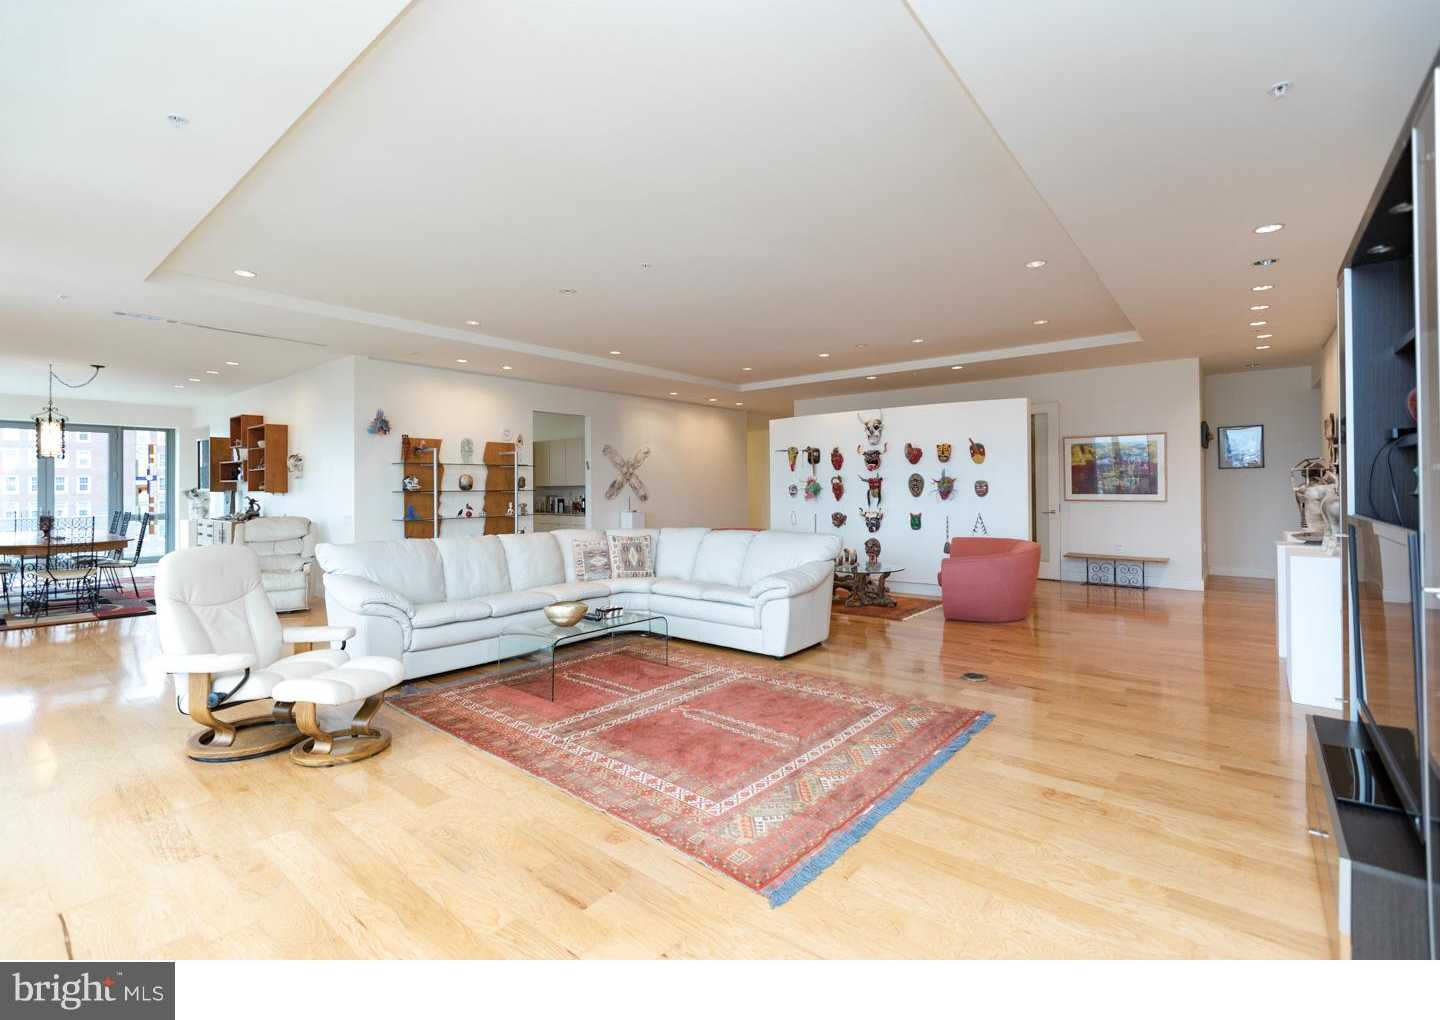 $3,750,000 - 3Br/3Ba -  for Sale in Rittenhouse Square, Philadelphia